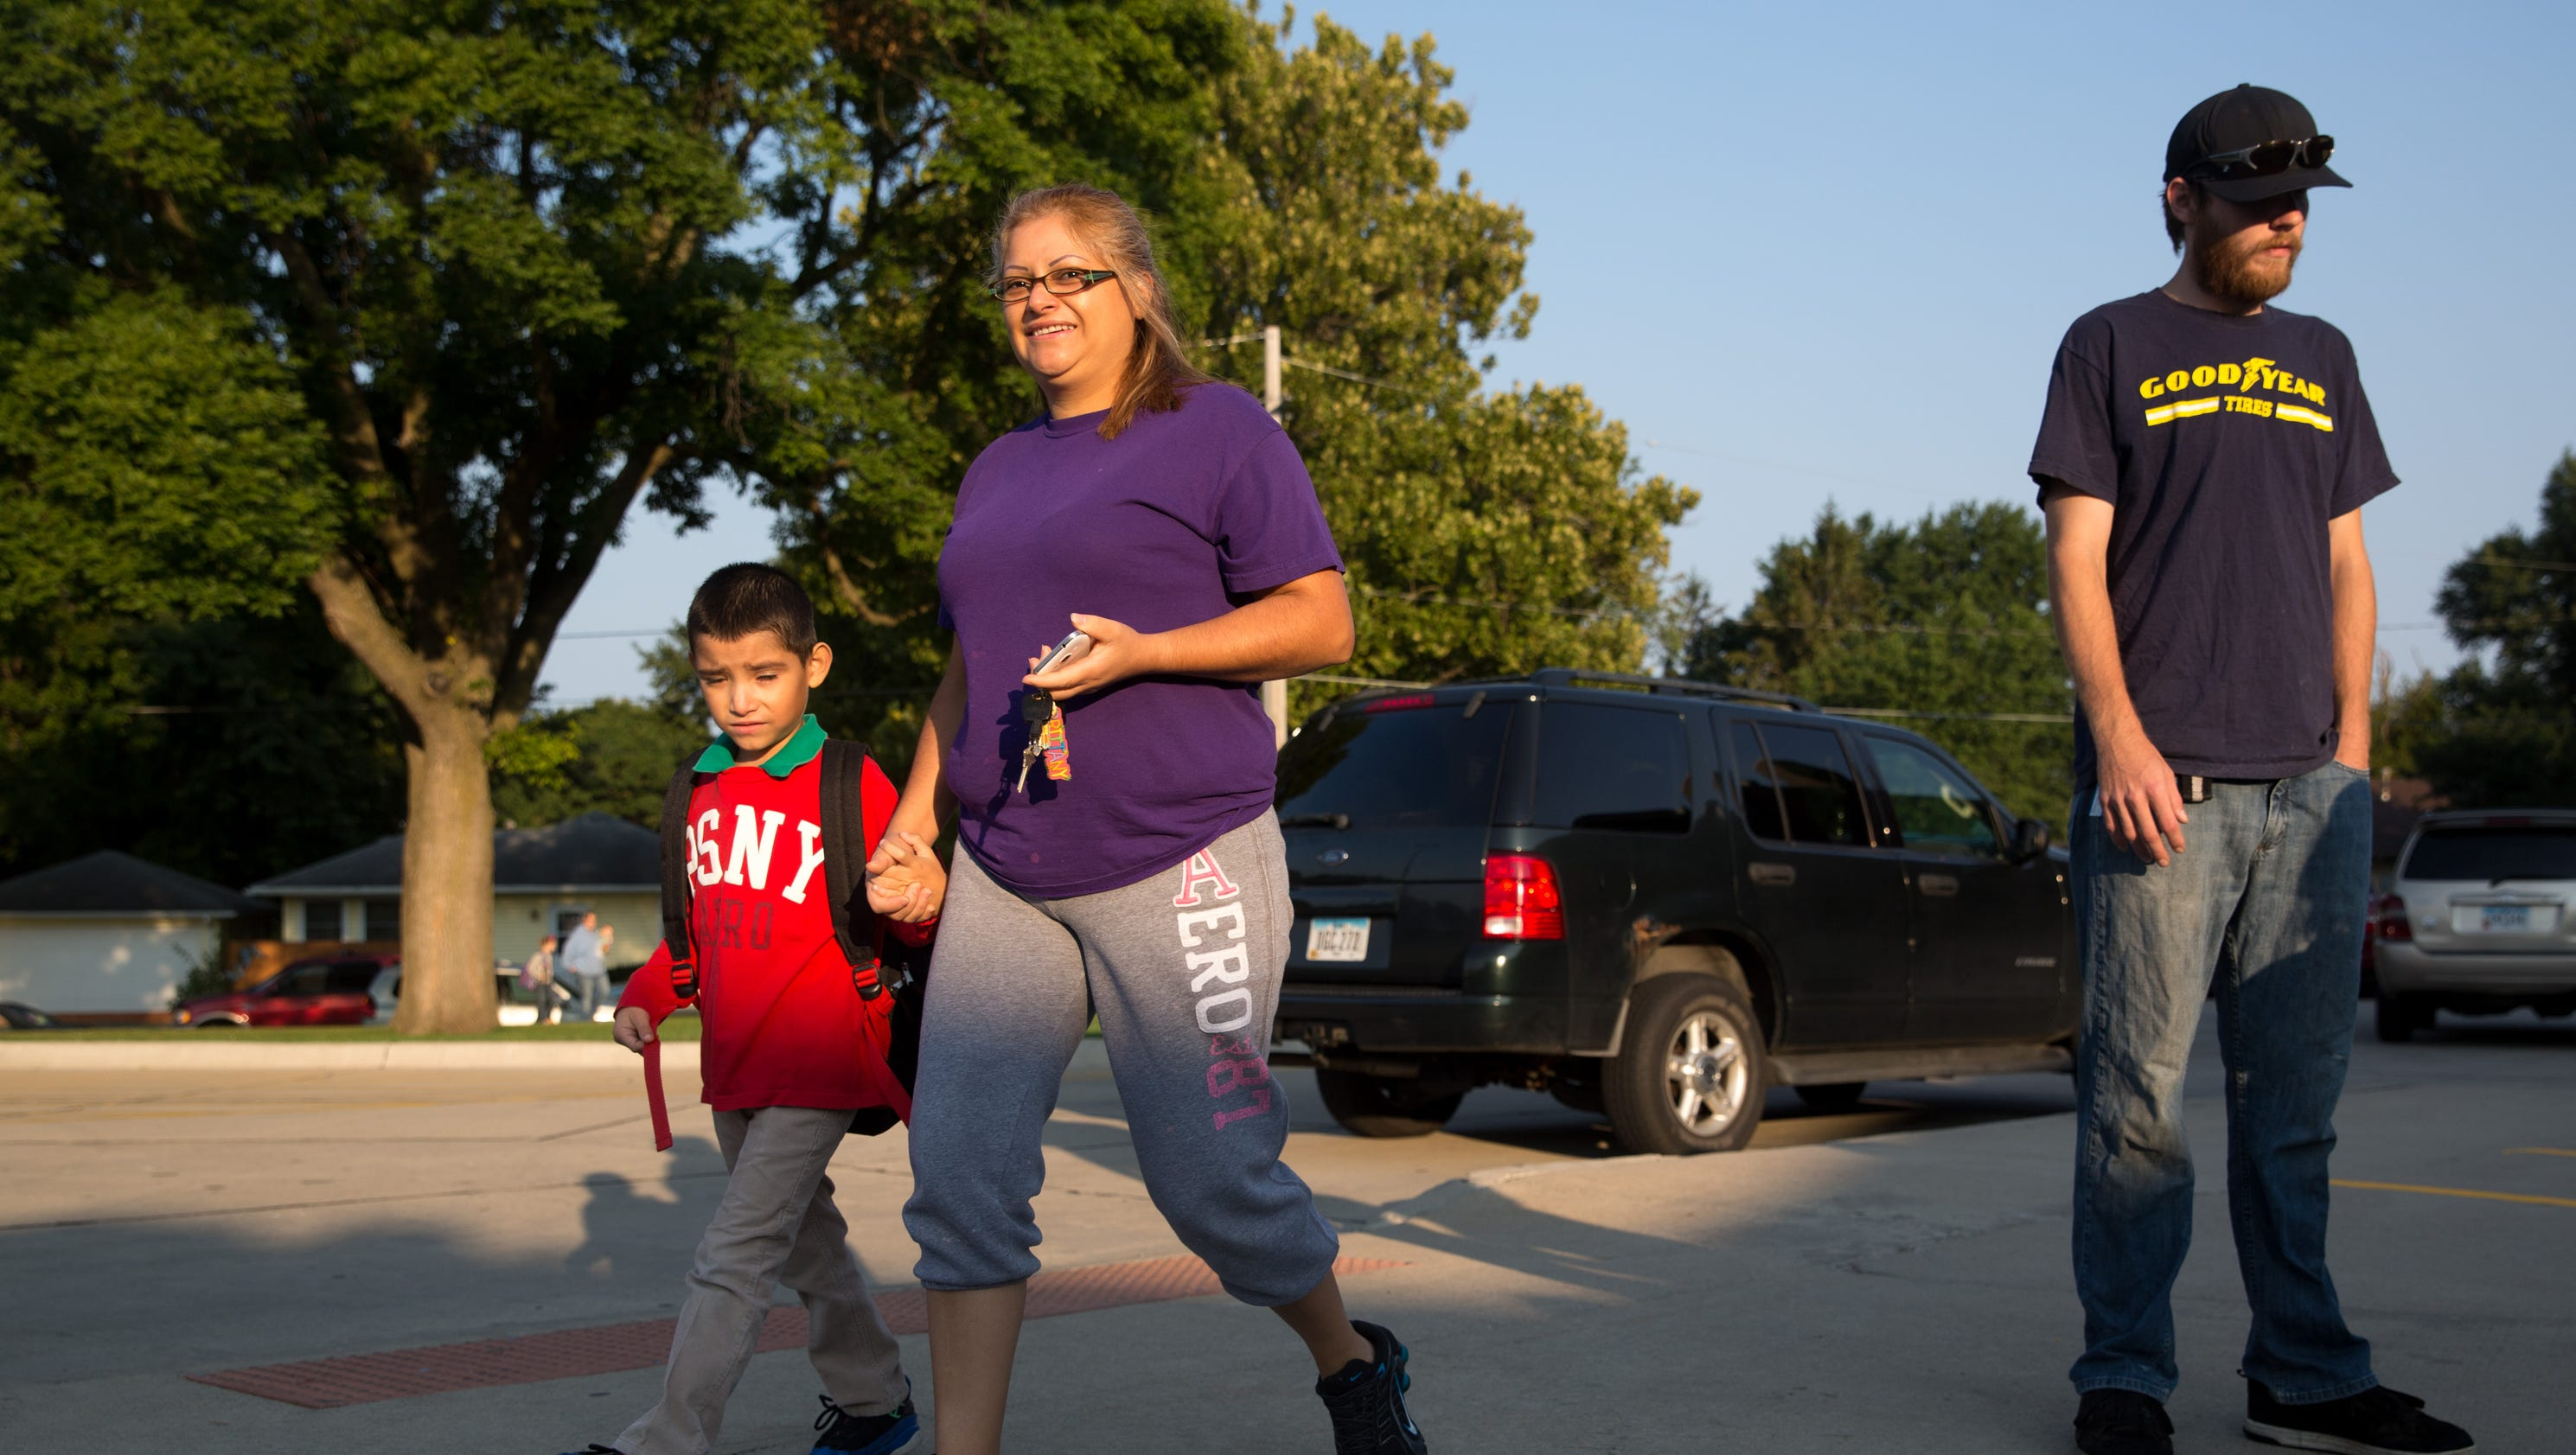 16 photos: First day of school at Howe